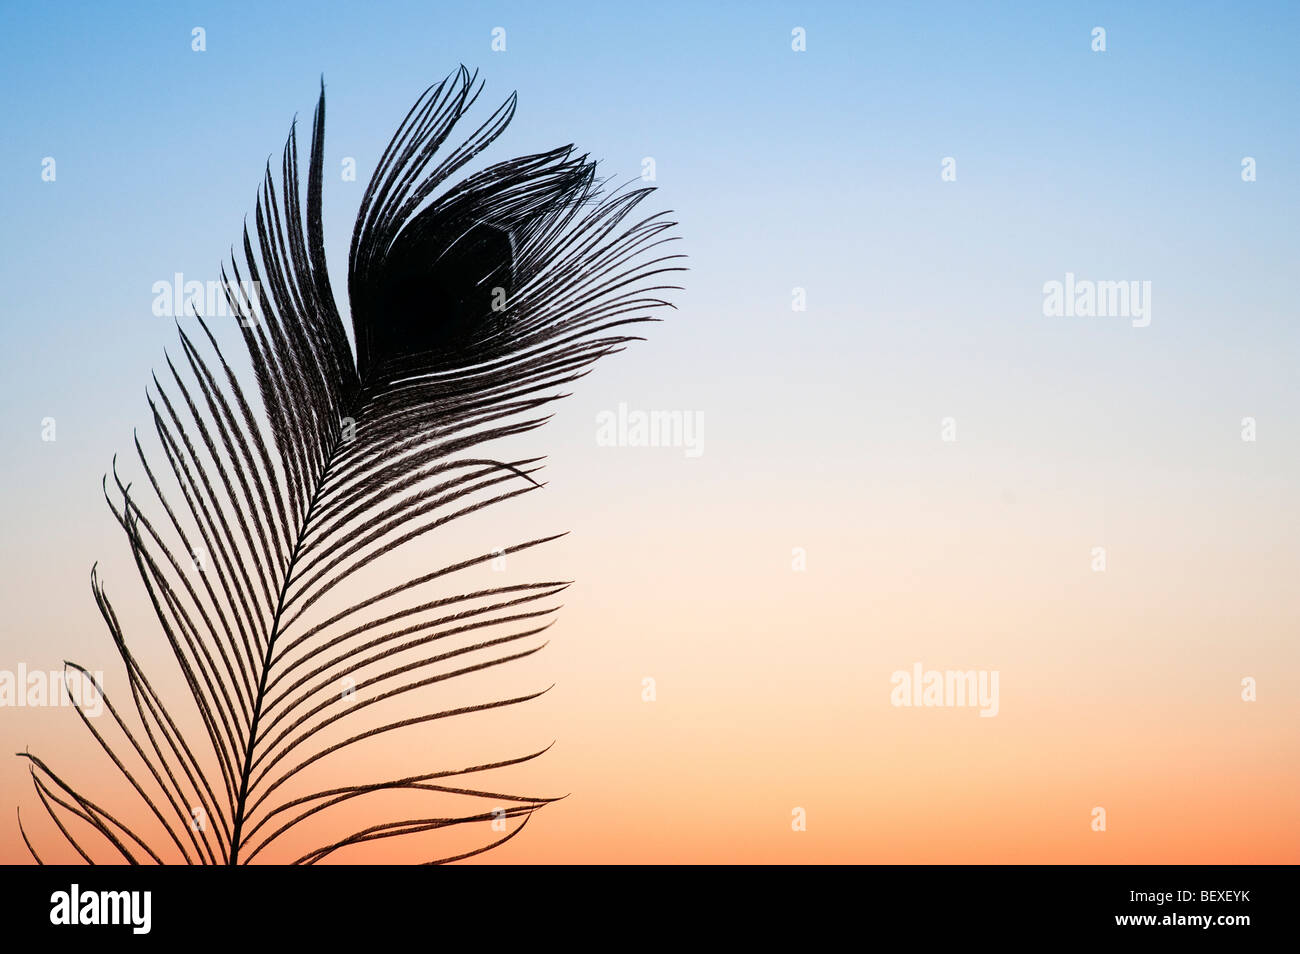 Silhouette peacock feather against a dawn sunrise in India - Stock Image